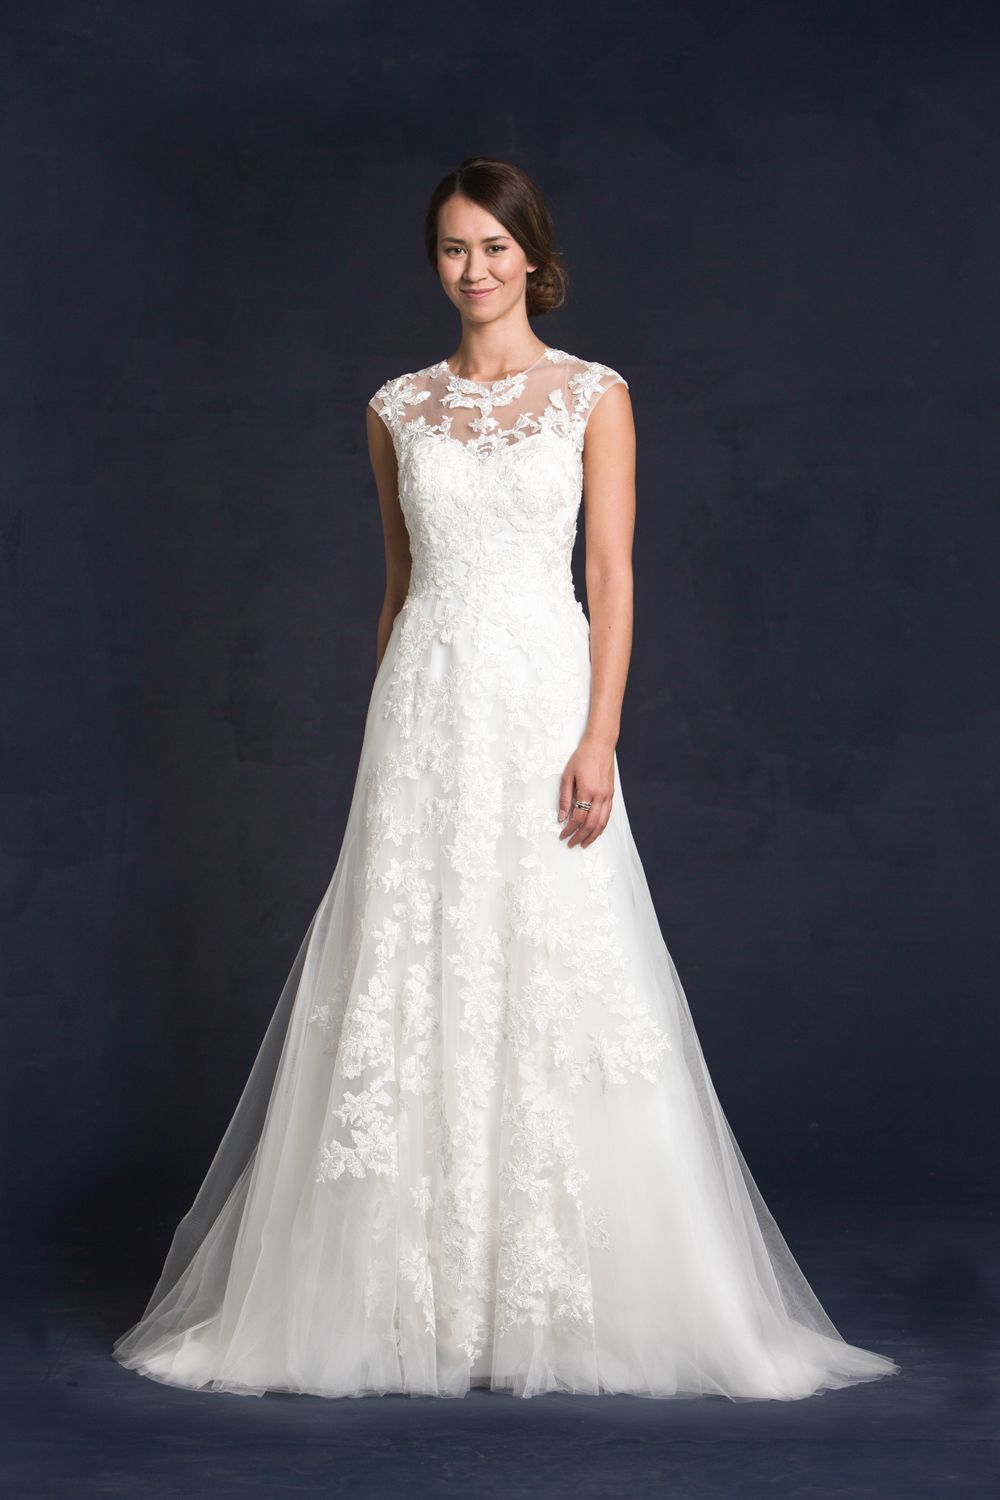 #Germaine from our 2015 Collection shows-off delicate soft lace and tulle.  Not only does she have an illusion neckline, the back is just as stunning.  To see more of our #Germaine gown, check out our website www.lissimon.com.